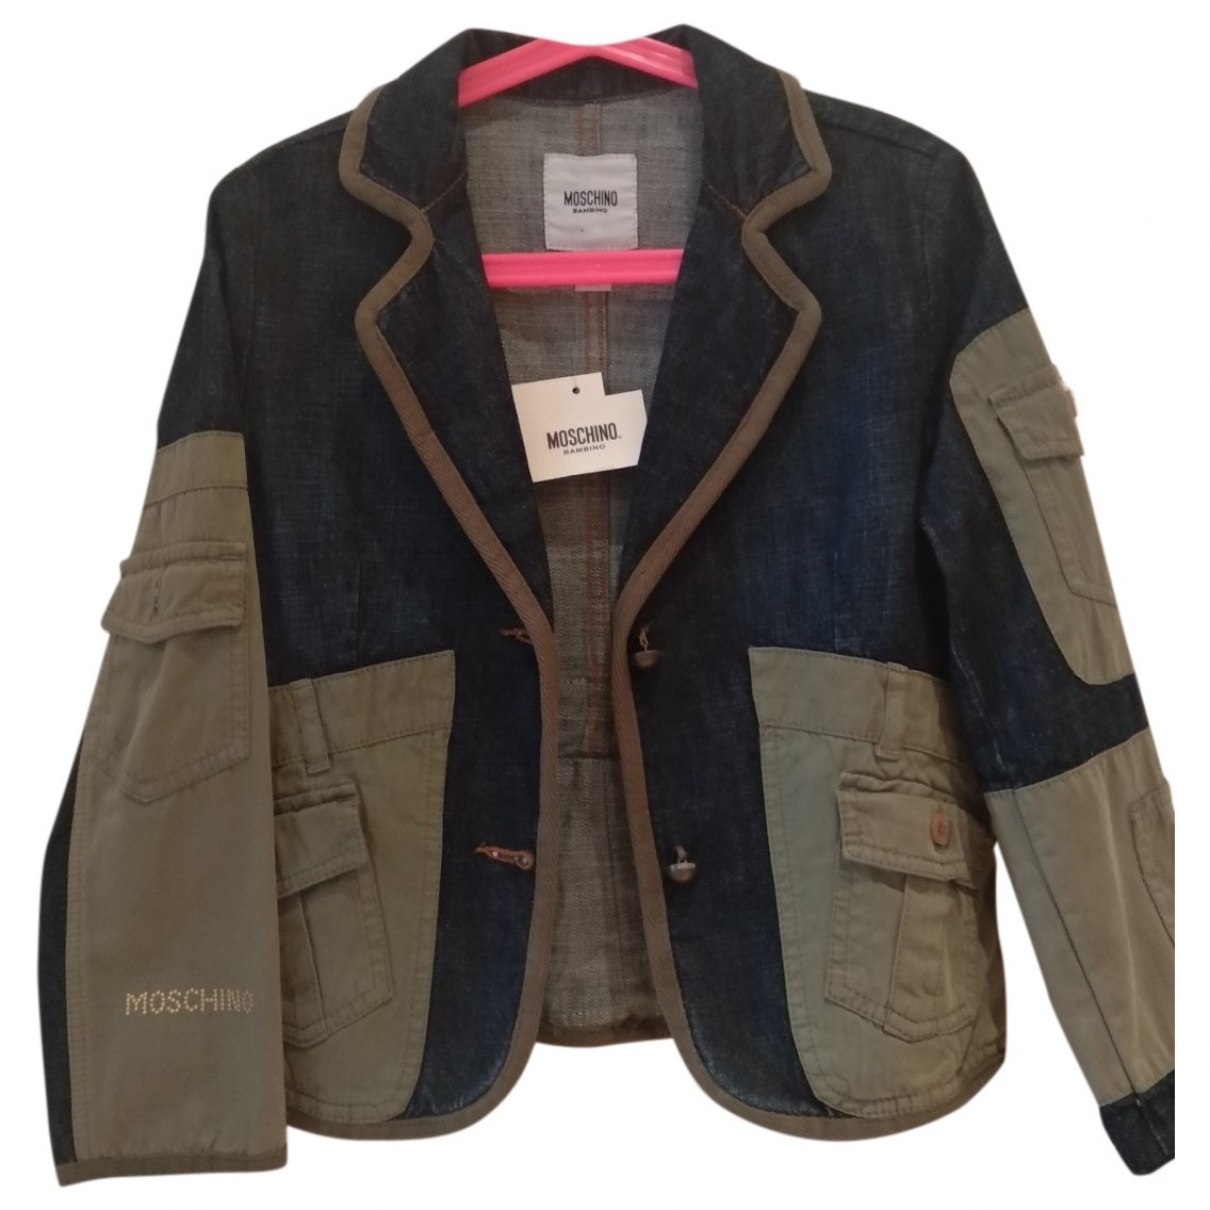 Moschino \N Blue Denim - Jeans jacket & coat for Kids 8 years - up to 128cm FR